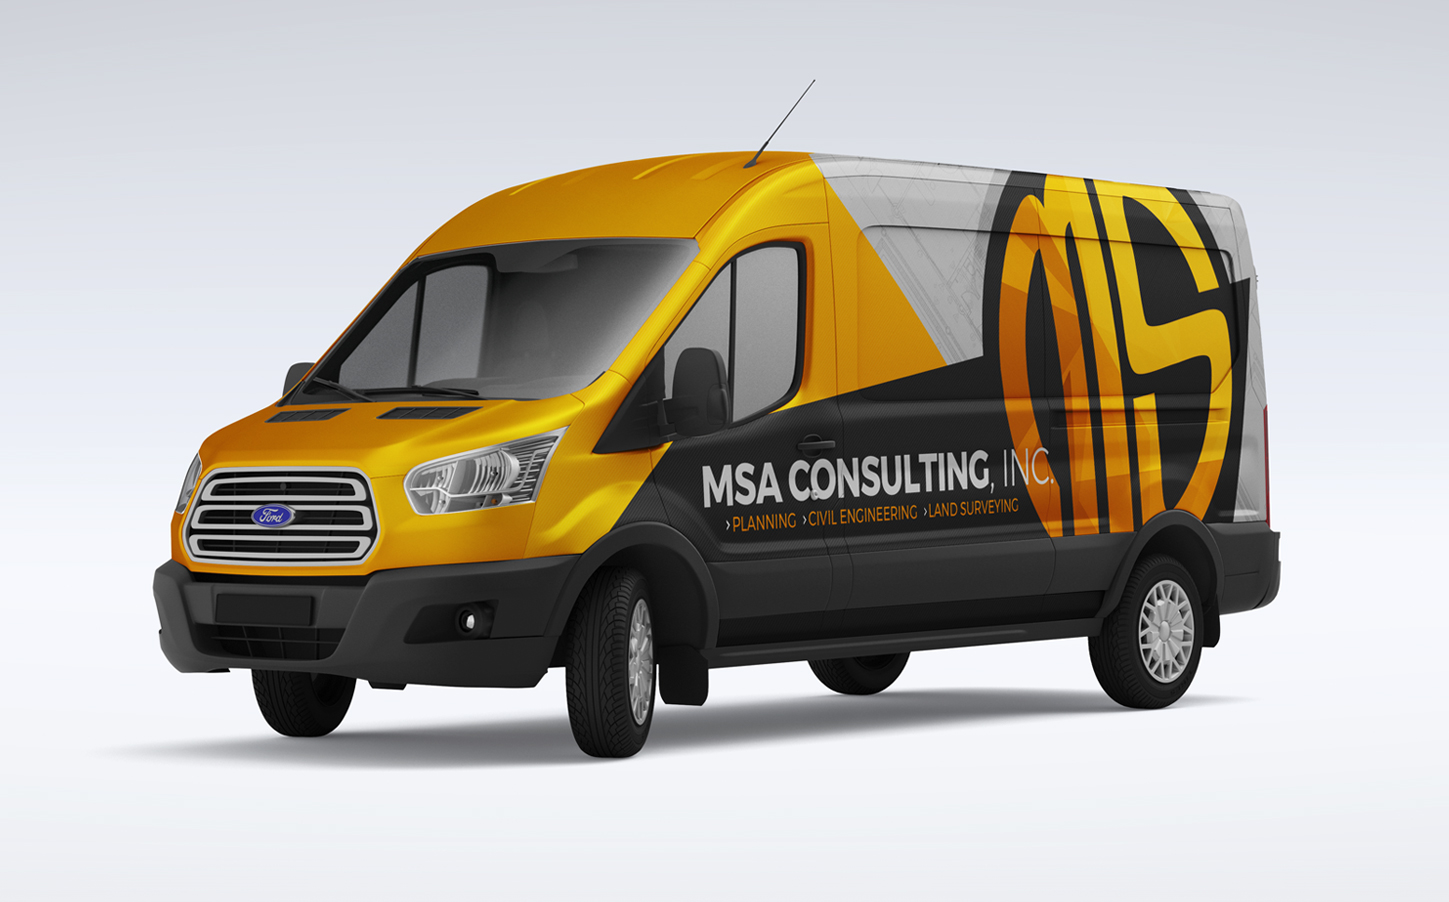 MSA_vehiclebranding-01